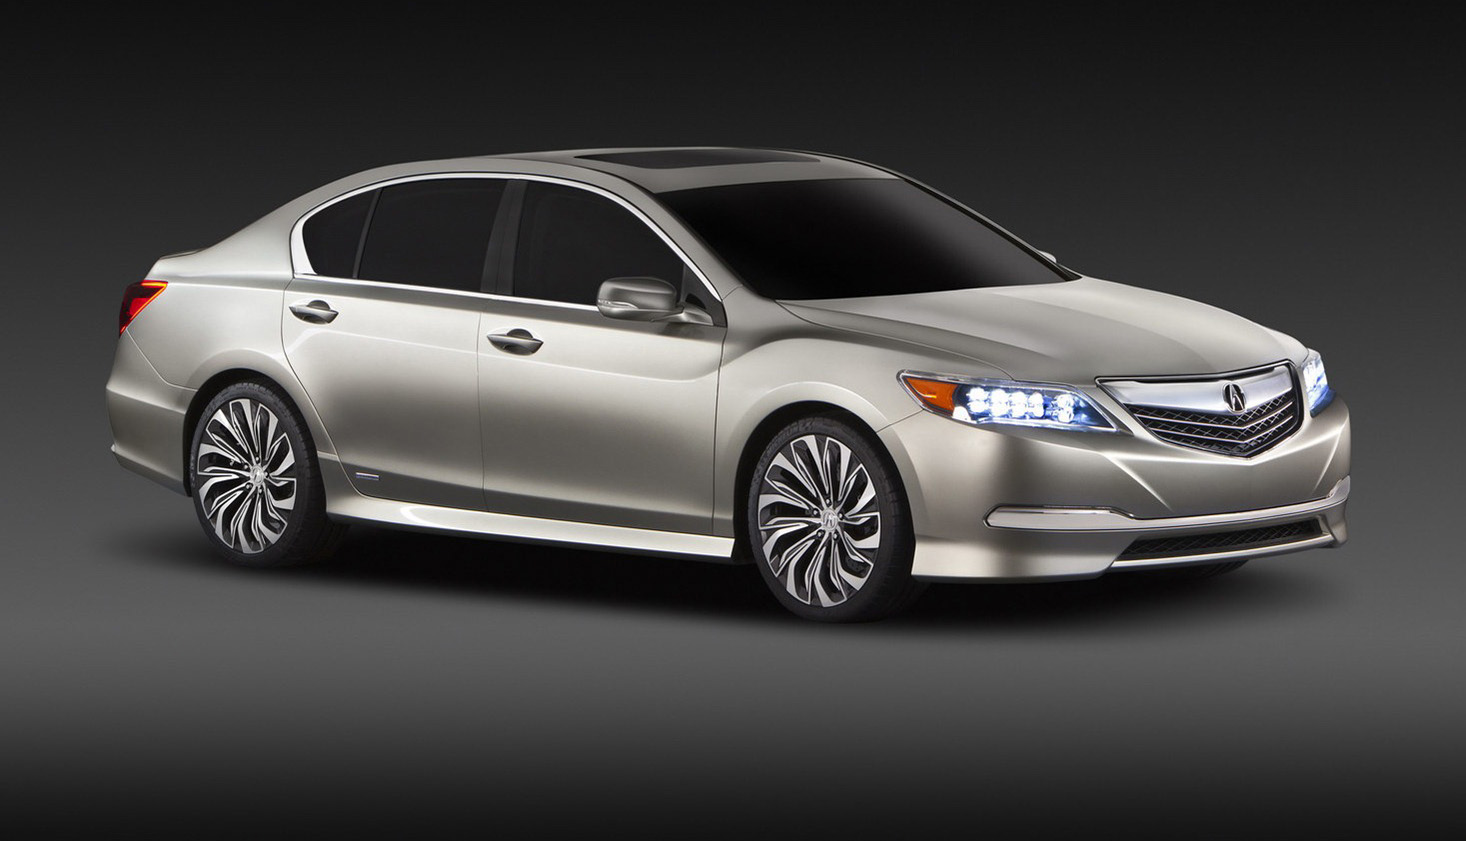 2013 Acura RLX Revealed: Is This The New Honda Legend?